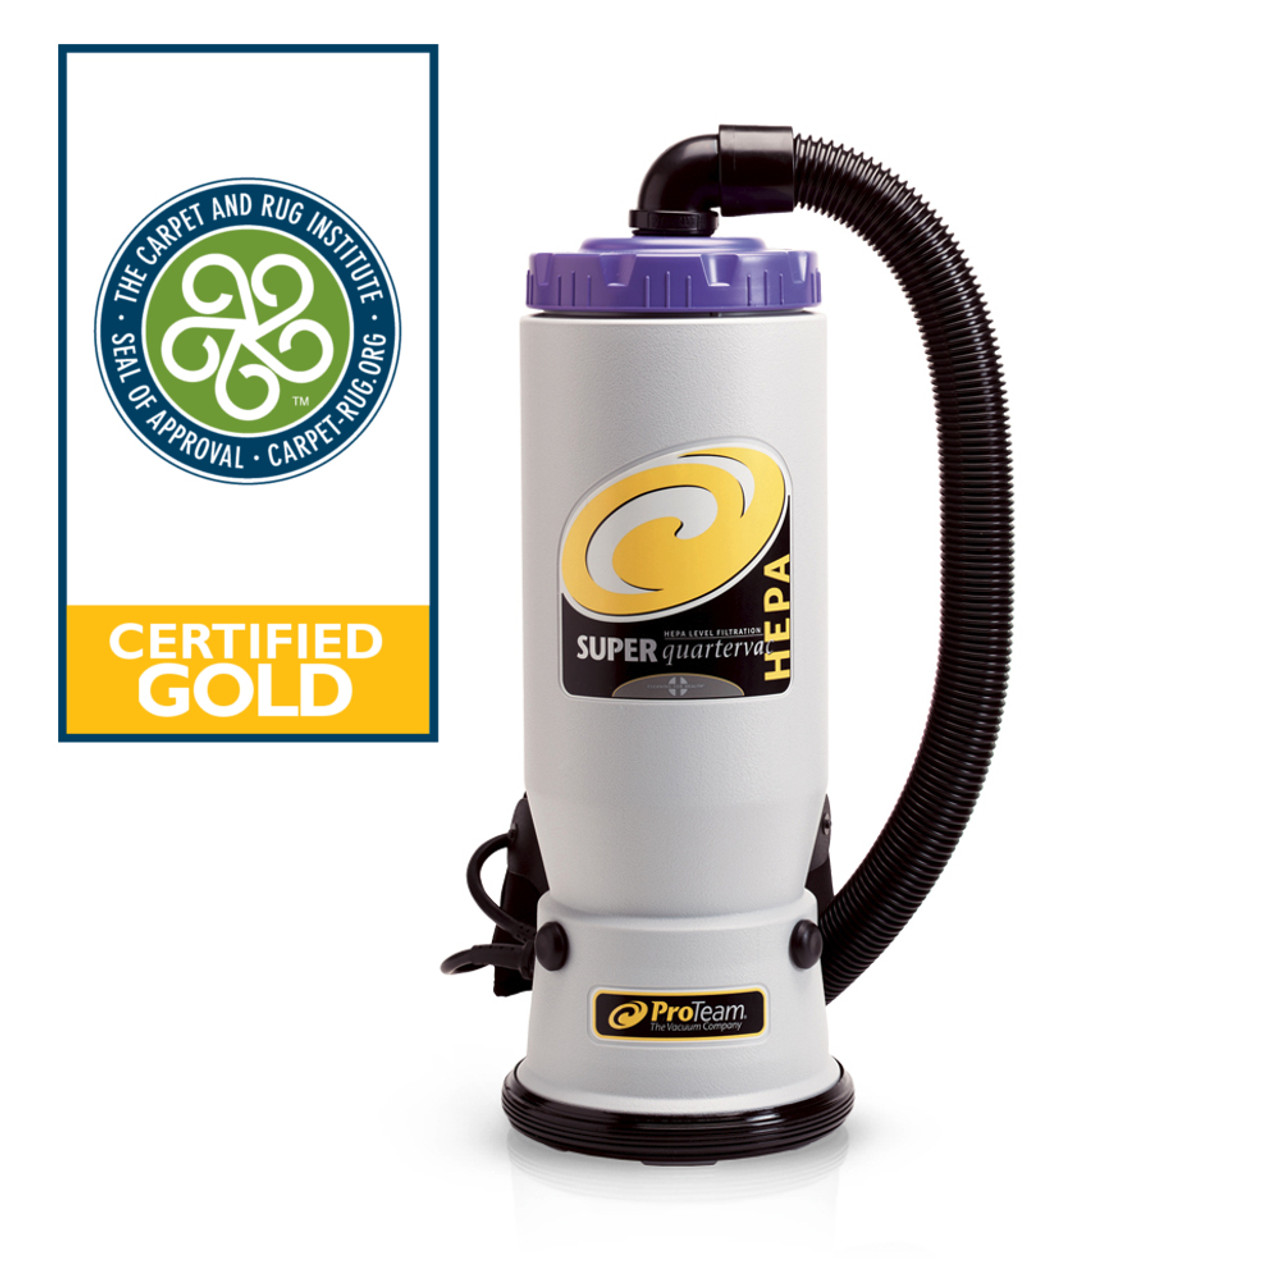 The Super QuarterVac is a powerful backpack vaccum with 6 qt. capacity and is certified Gold for 99.9% efficiency in picking up particulates.